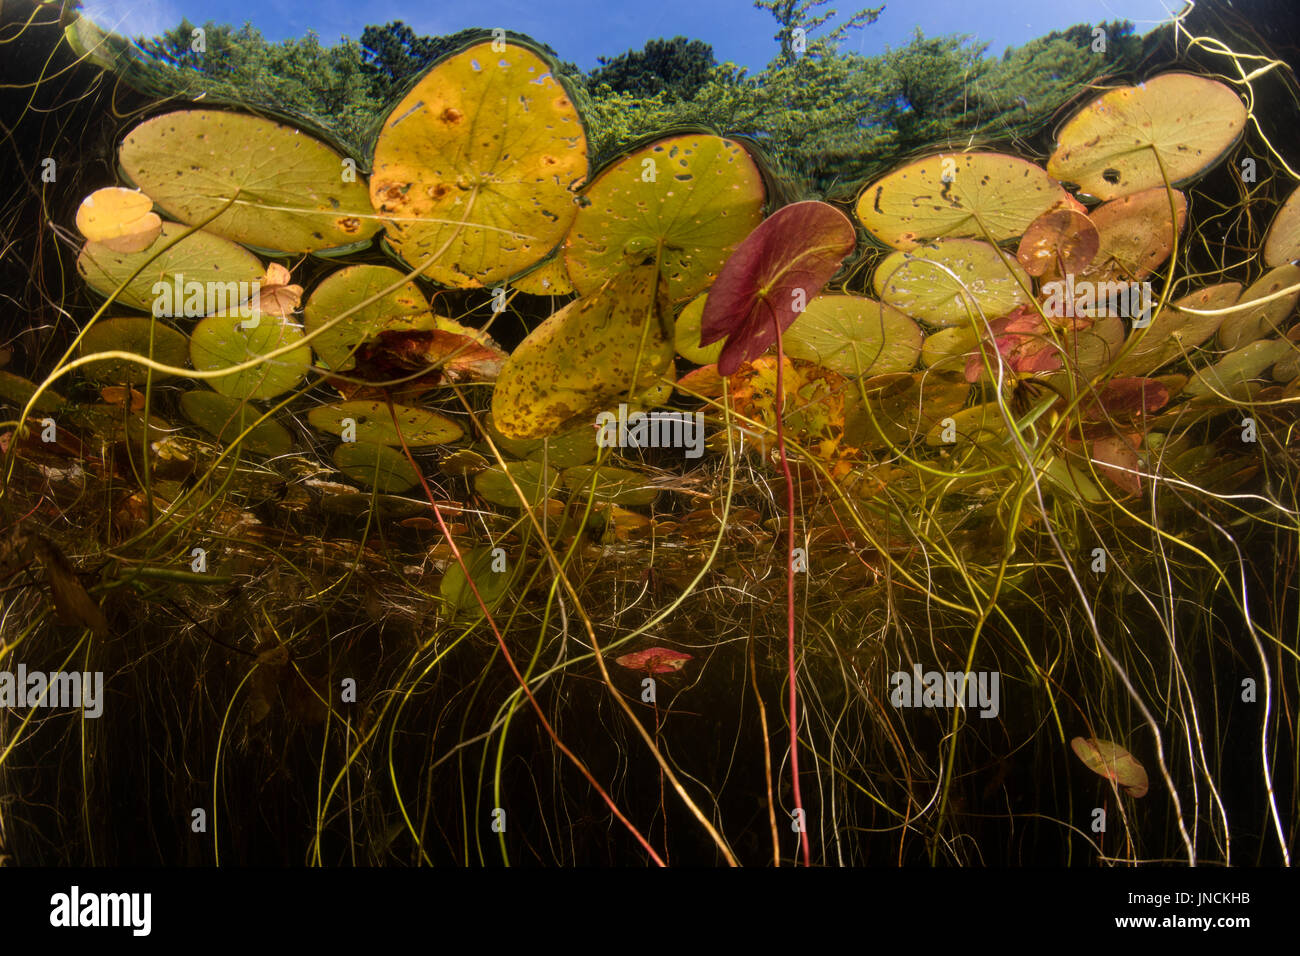 Lily pads grow at the edge of a freshwater pond on Cape Cod, Massachusetts. This beautiful New England peninsula has many lakes and kettle ponds. - Stock Image